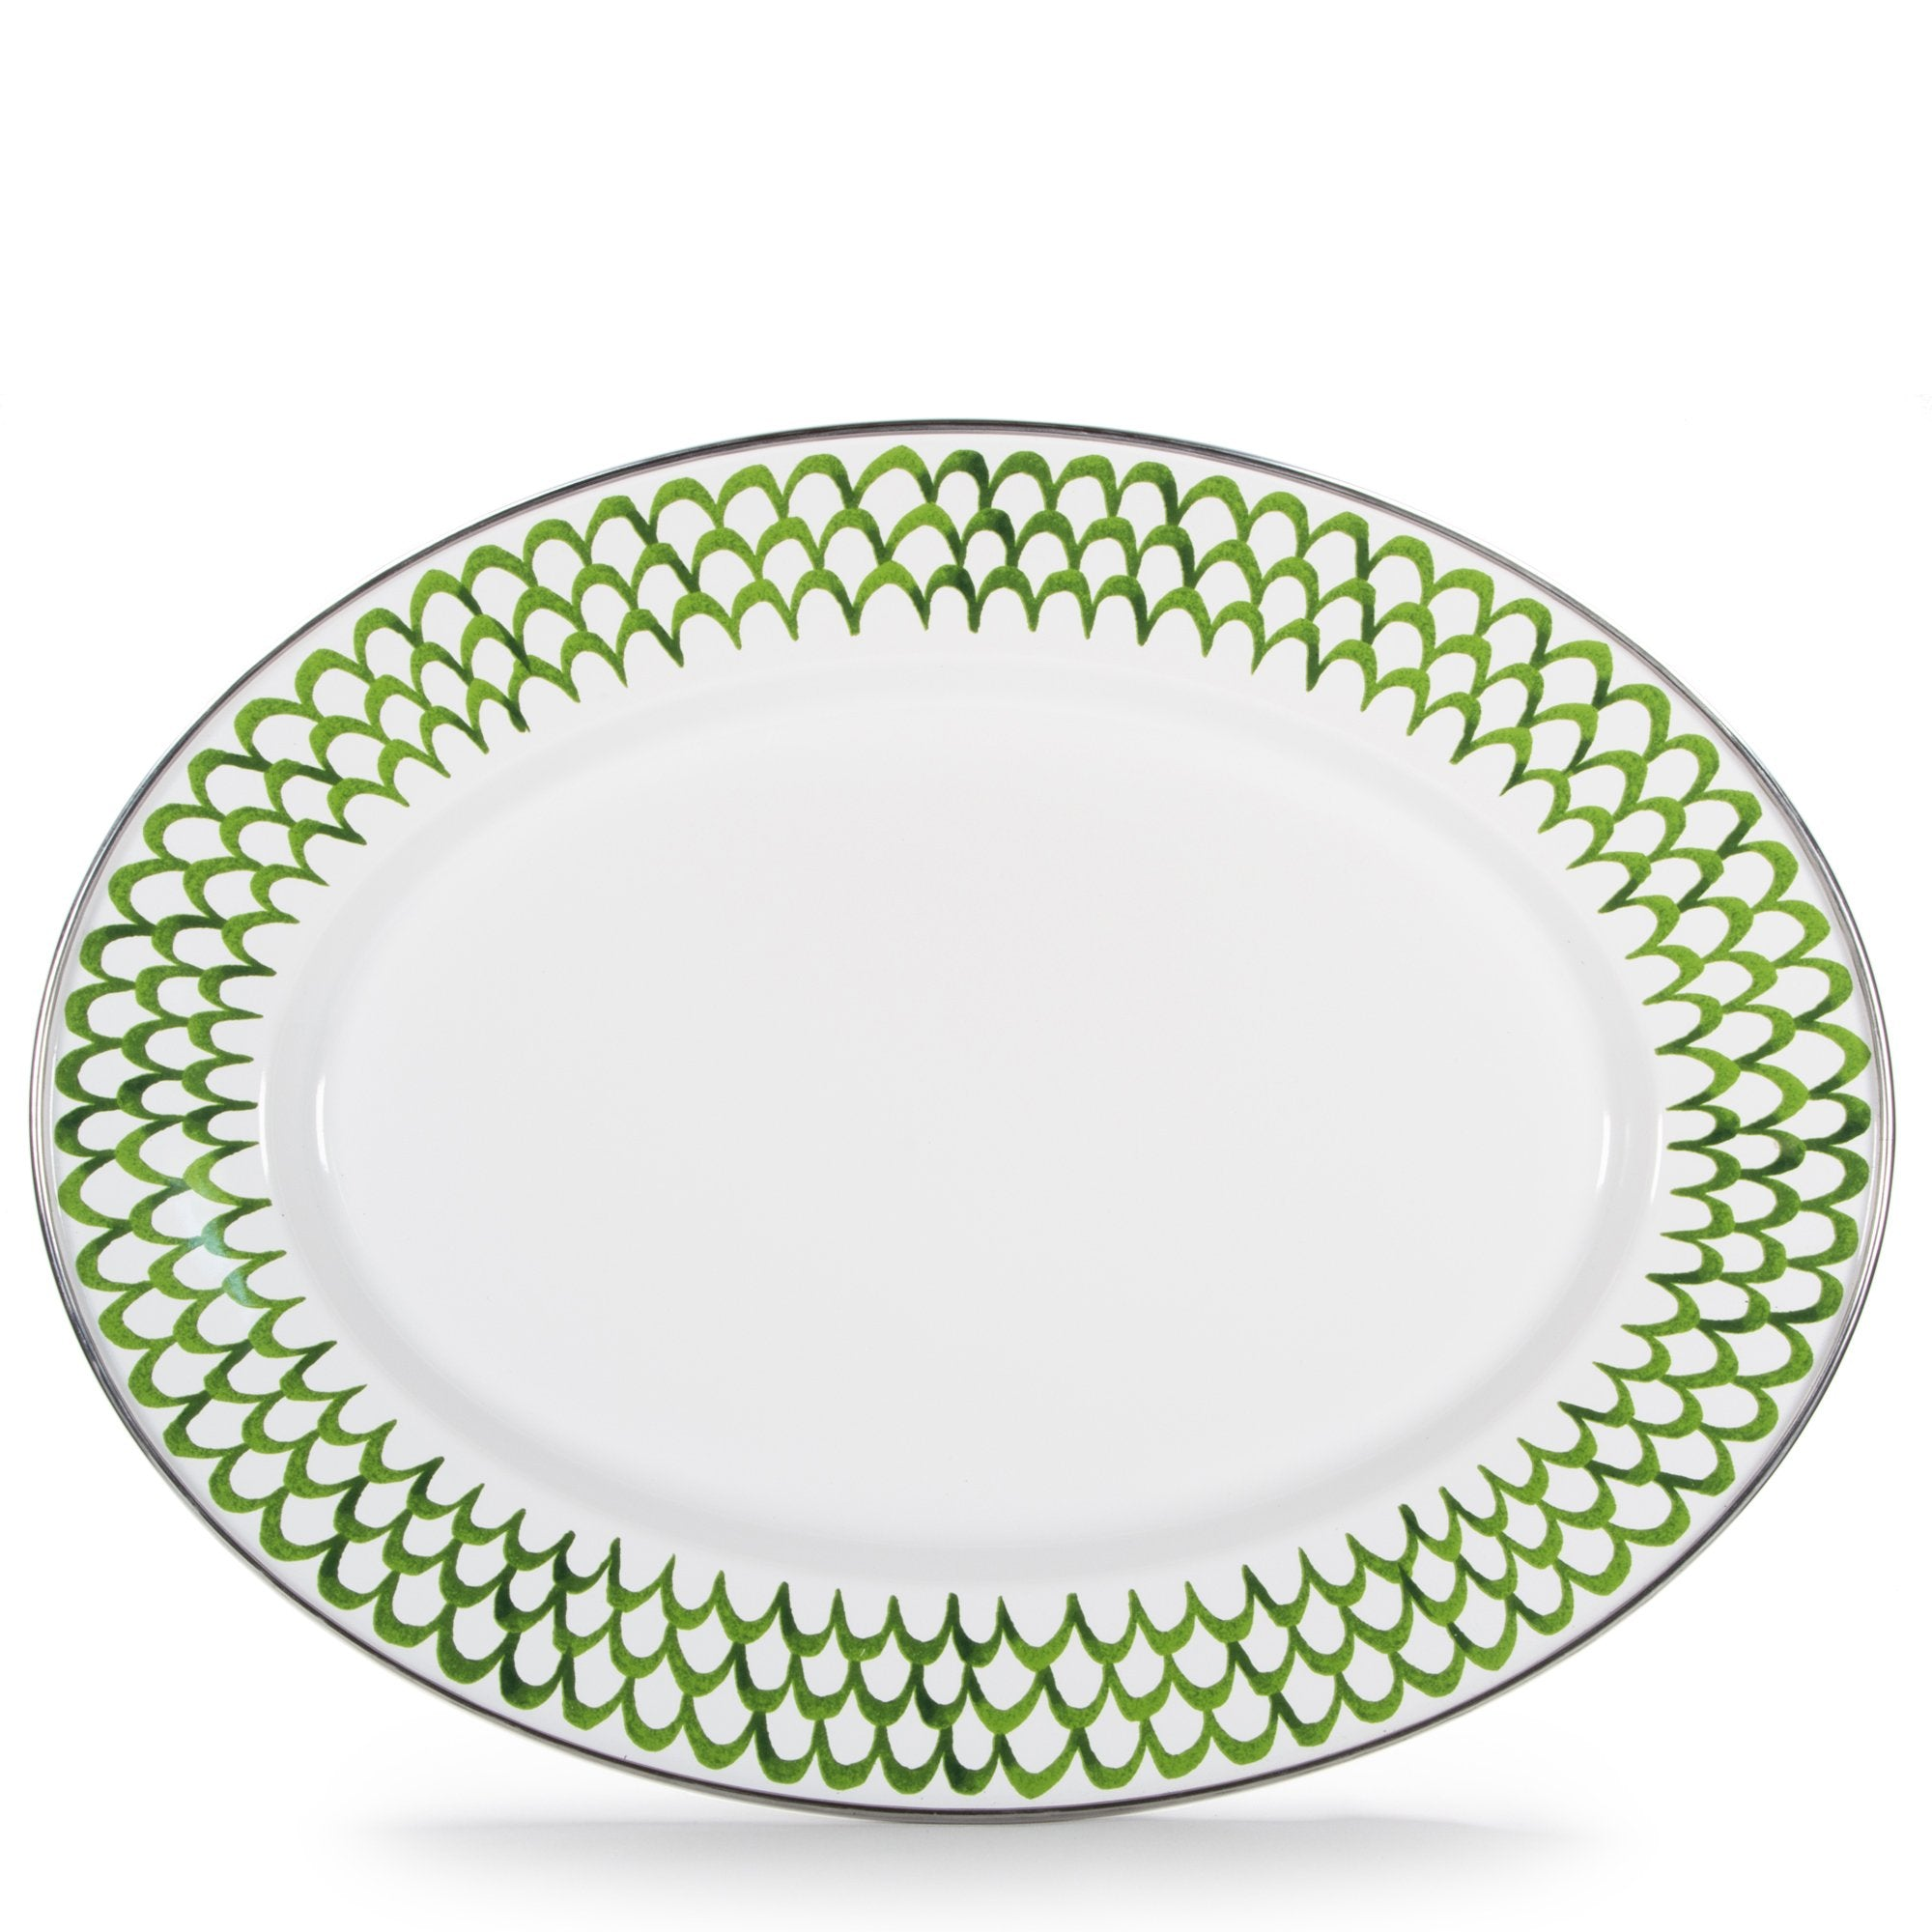 GS06 - Green Scallop Oval Platter Product 1